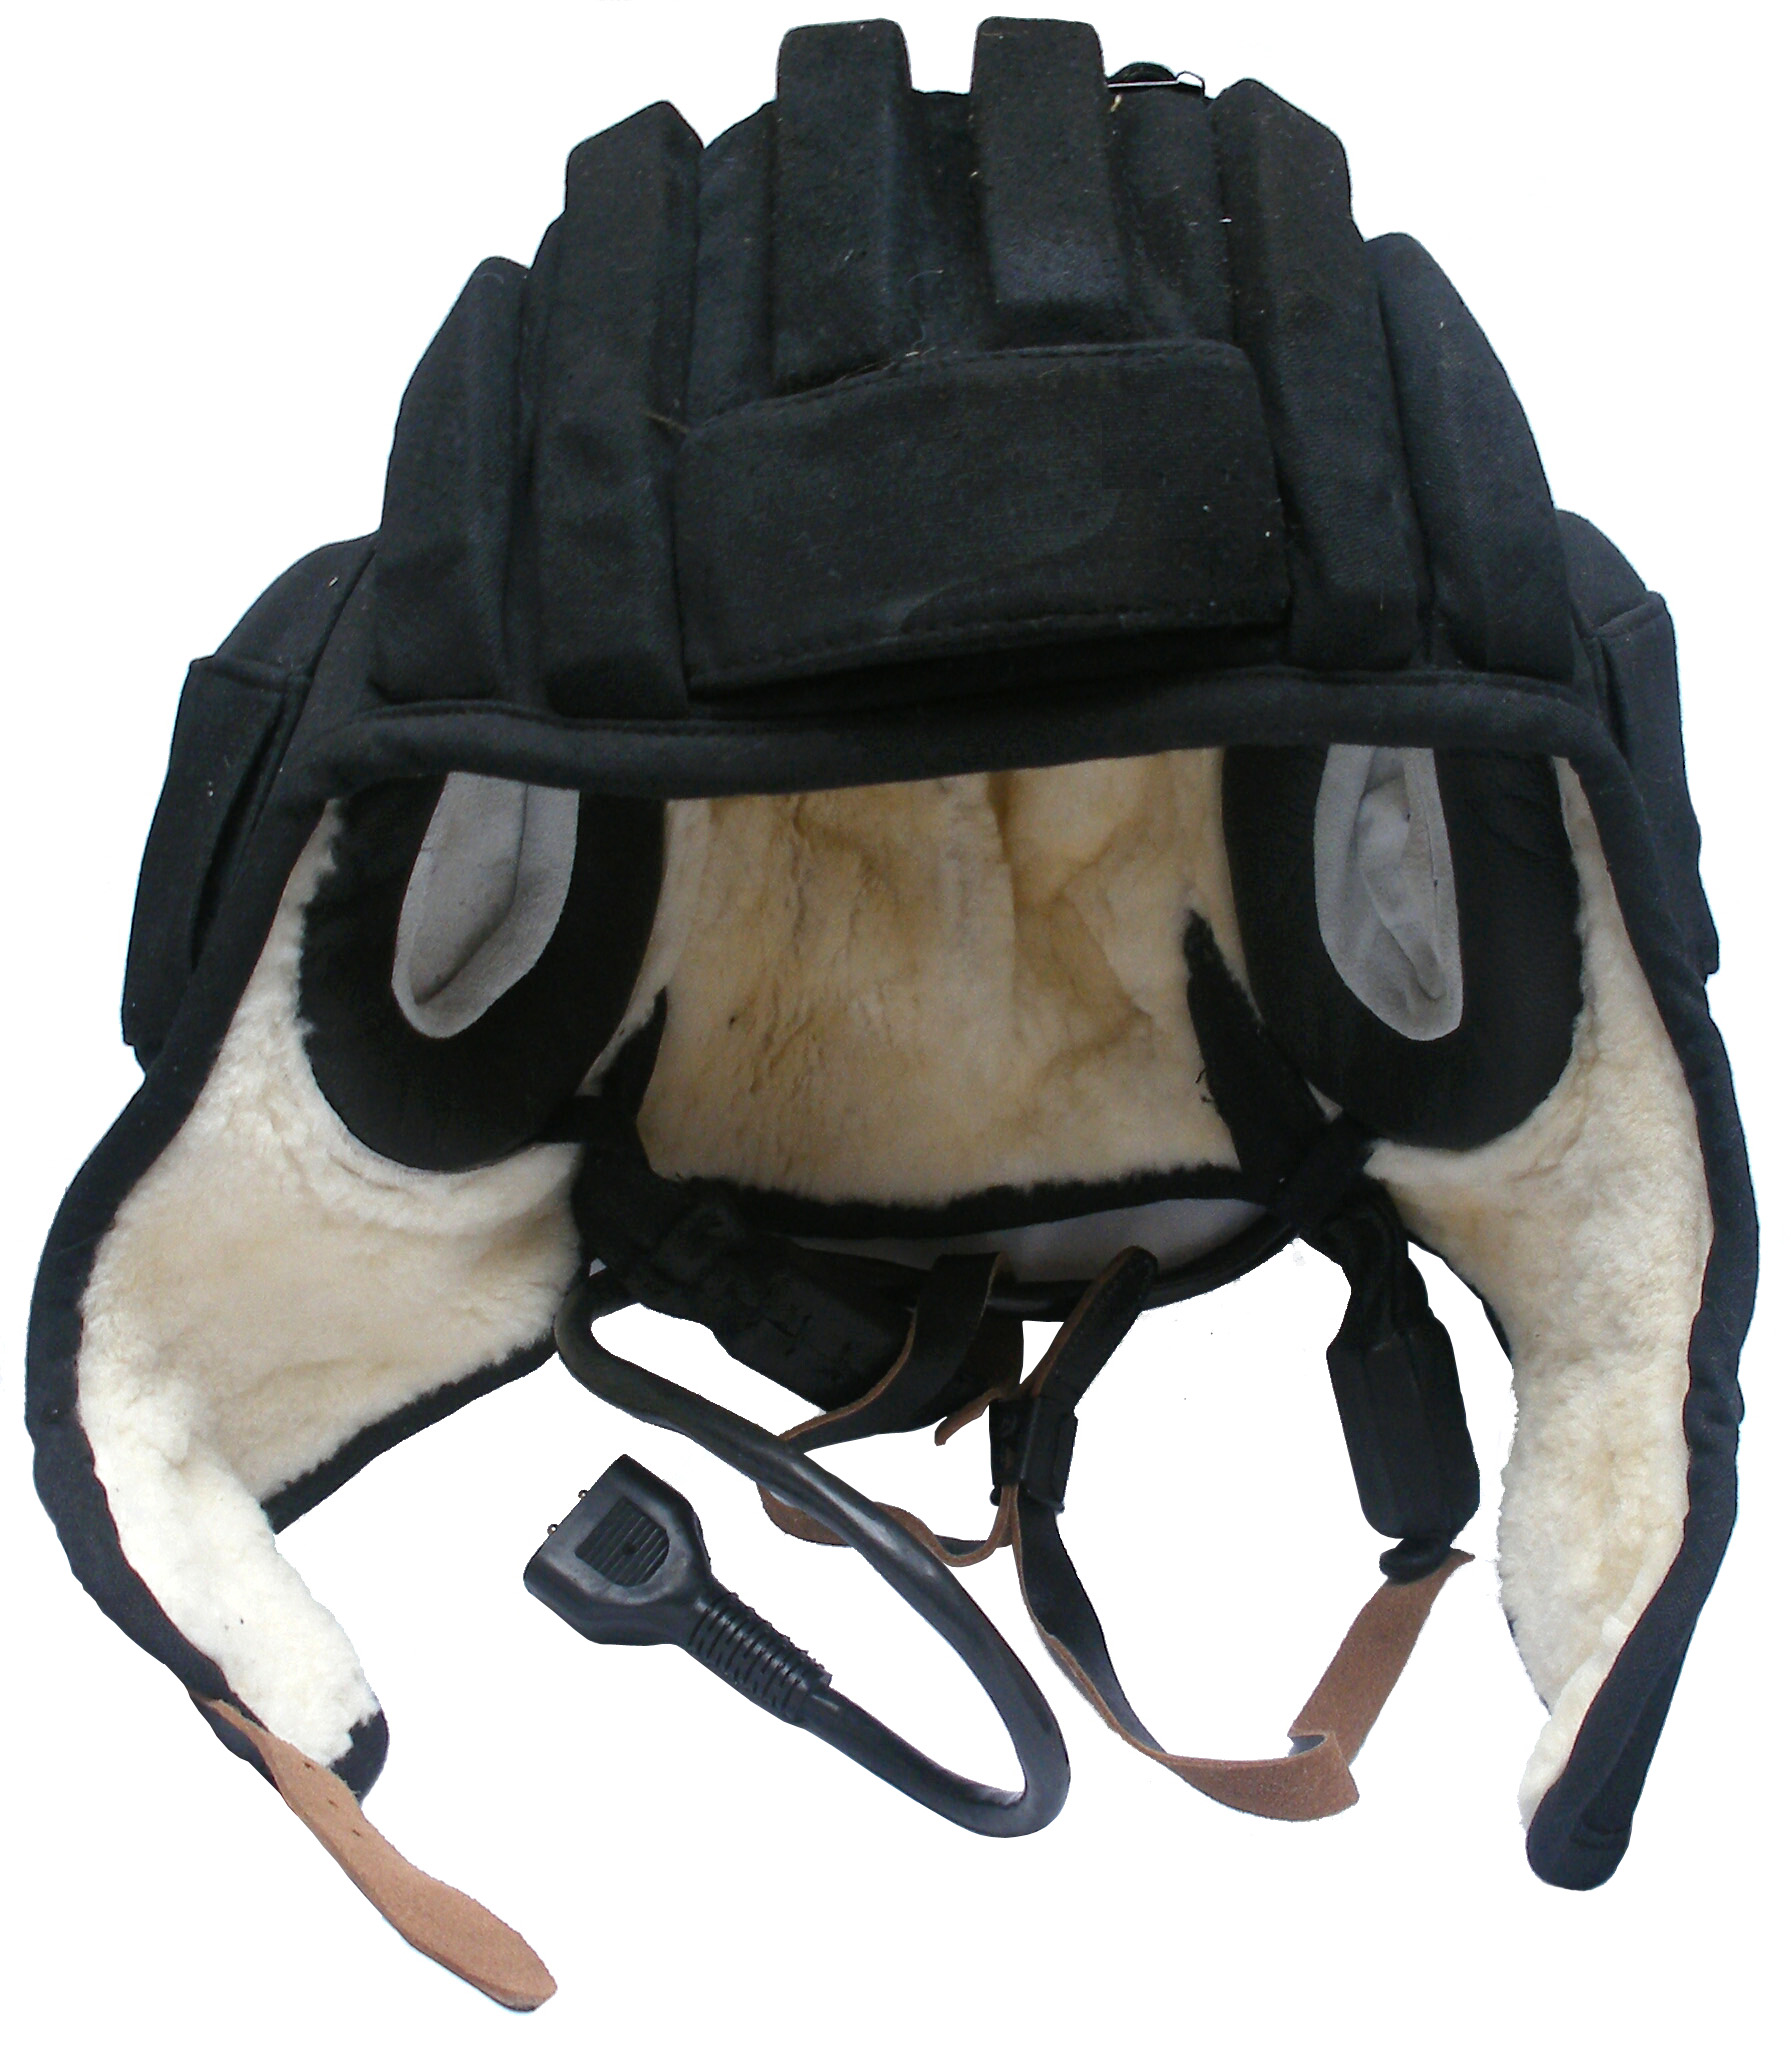 hight resolution of a tankers helmet with mic and headphones all built in preferably usb